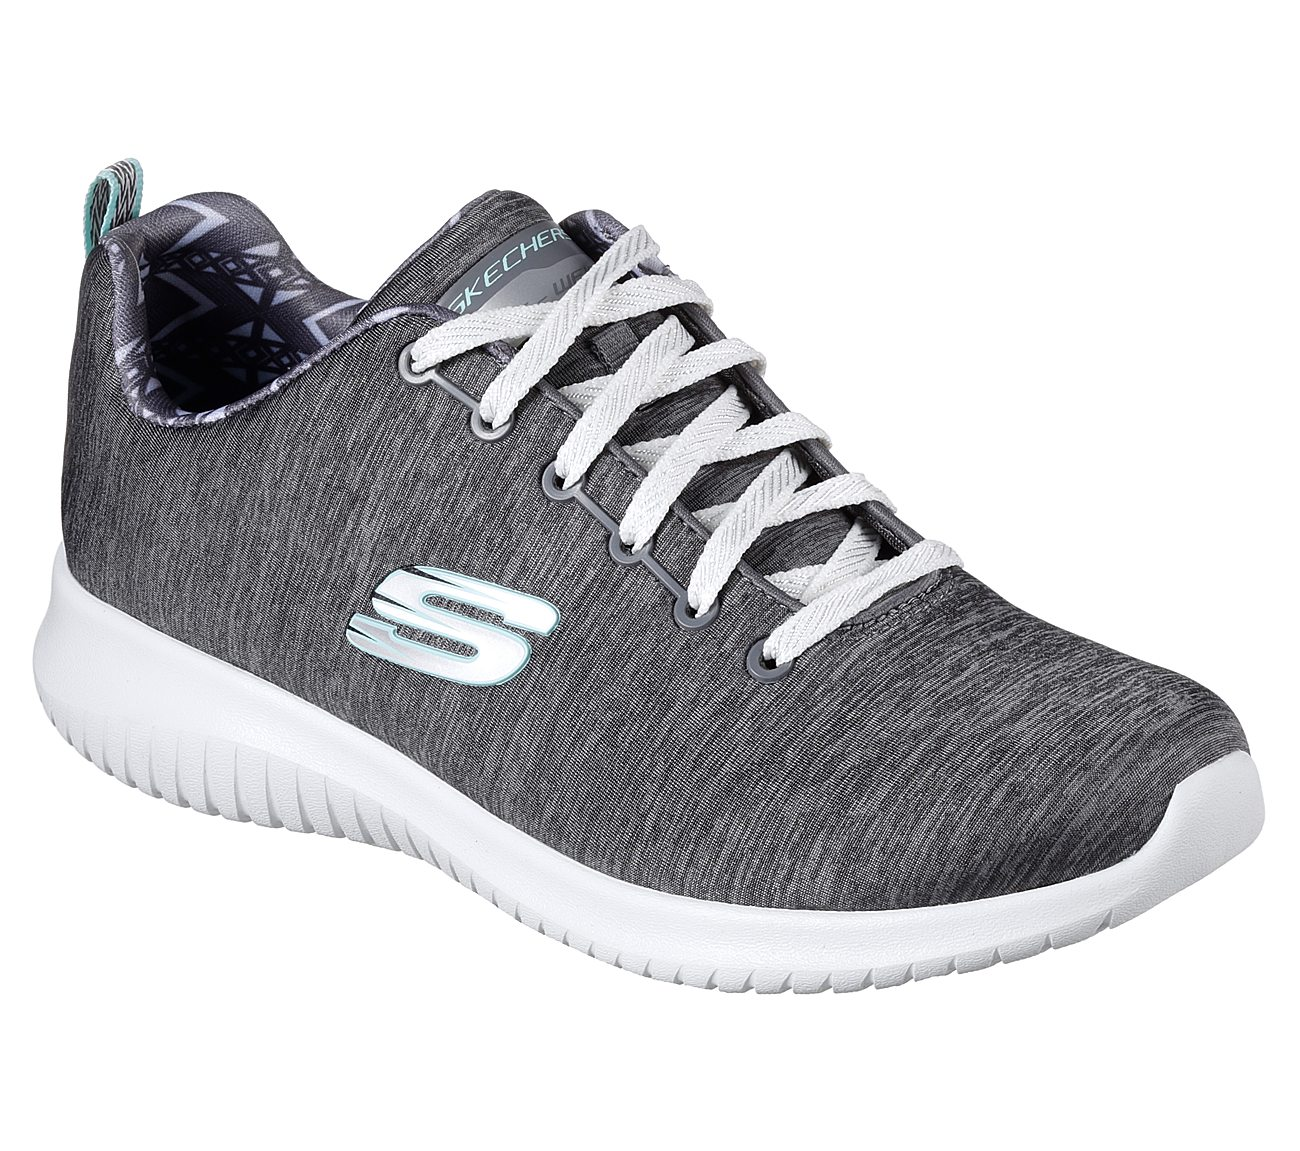 Editor Tener cuidado Abrumar  Buy SKECHERS Ultra Flex - First Choice Training Shoes Shoes